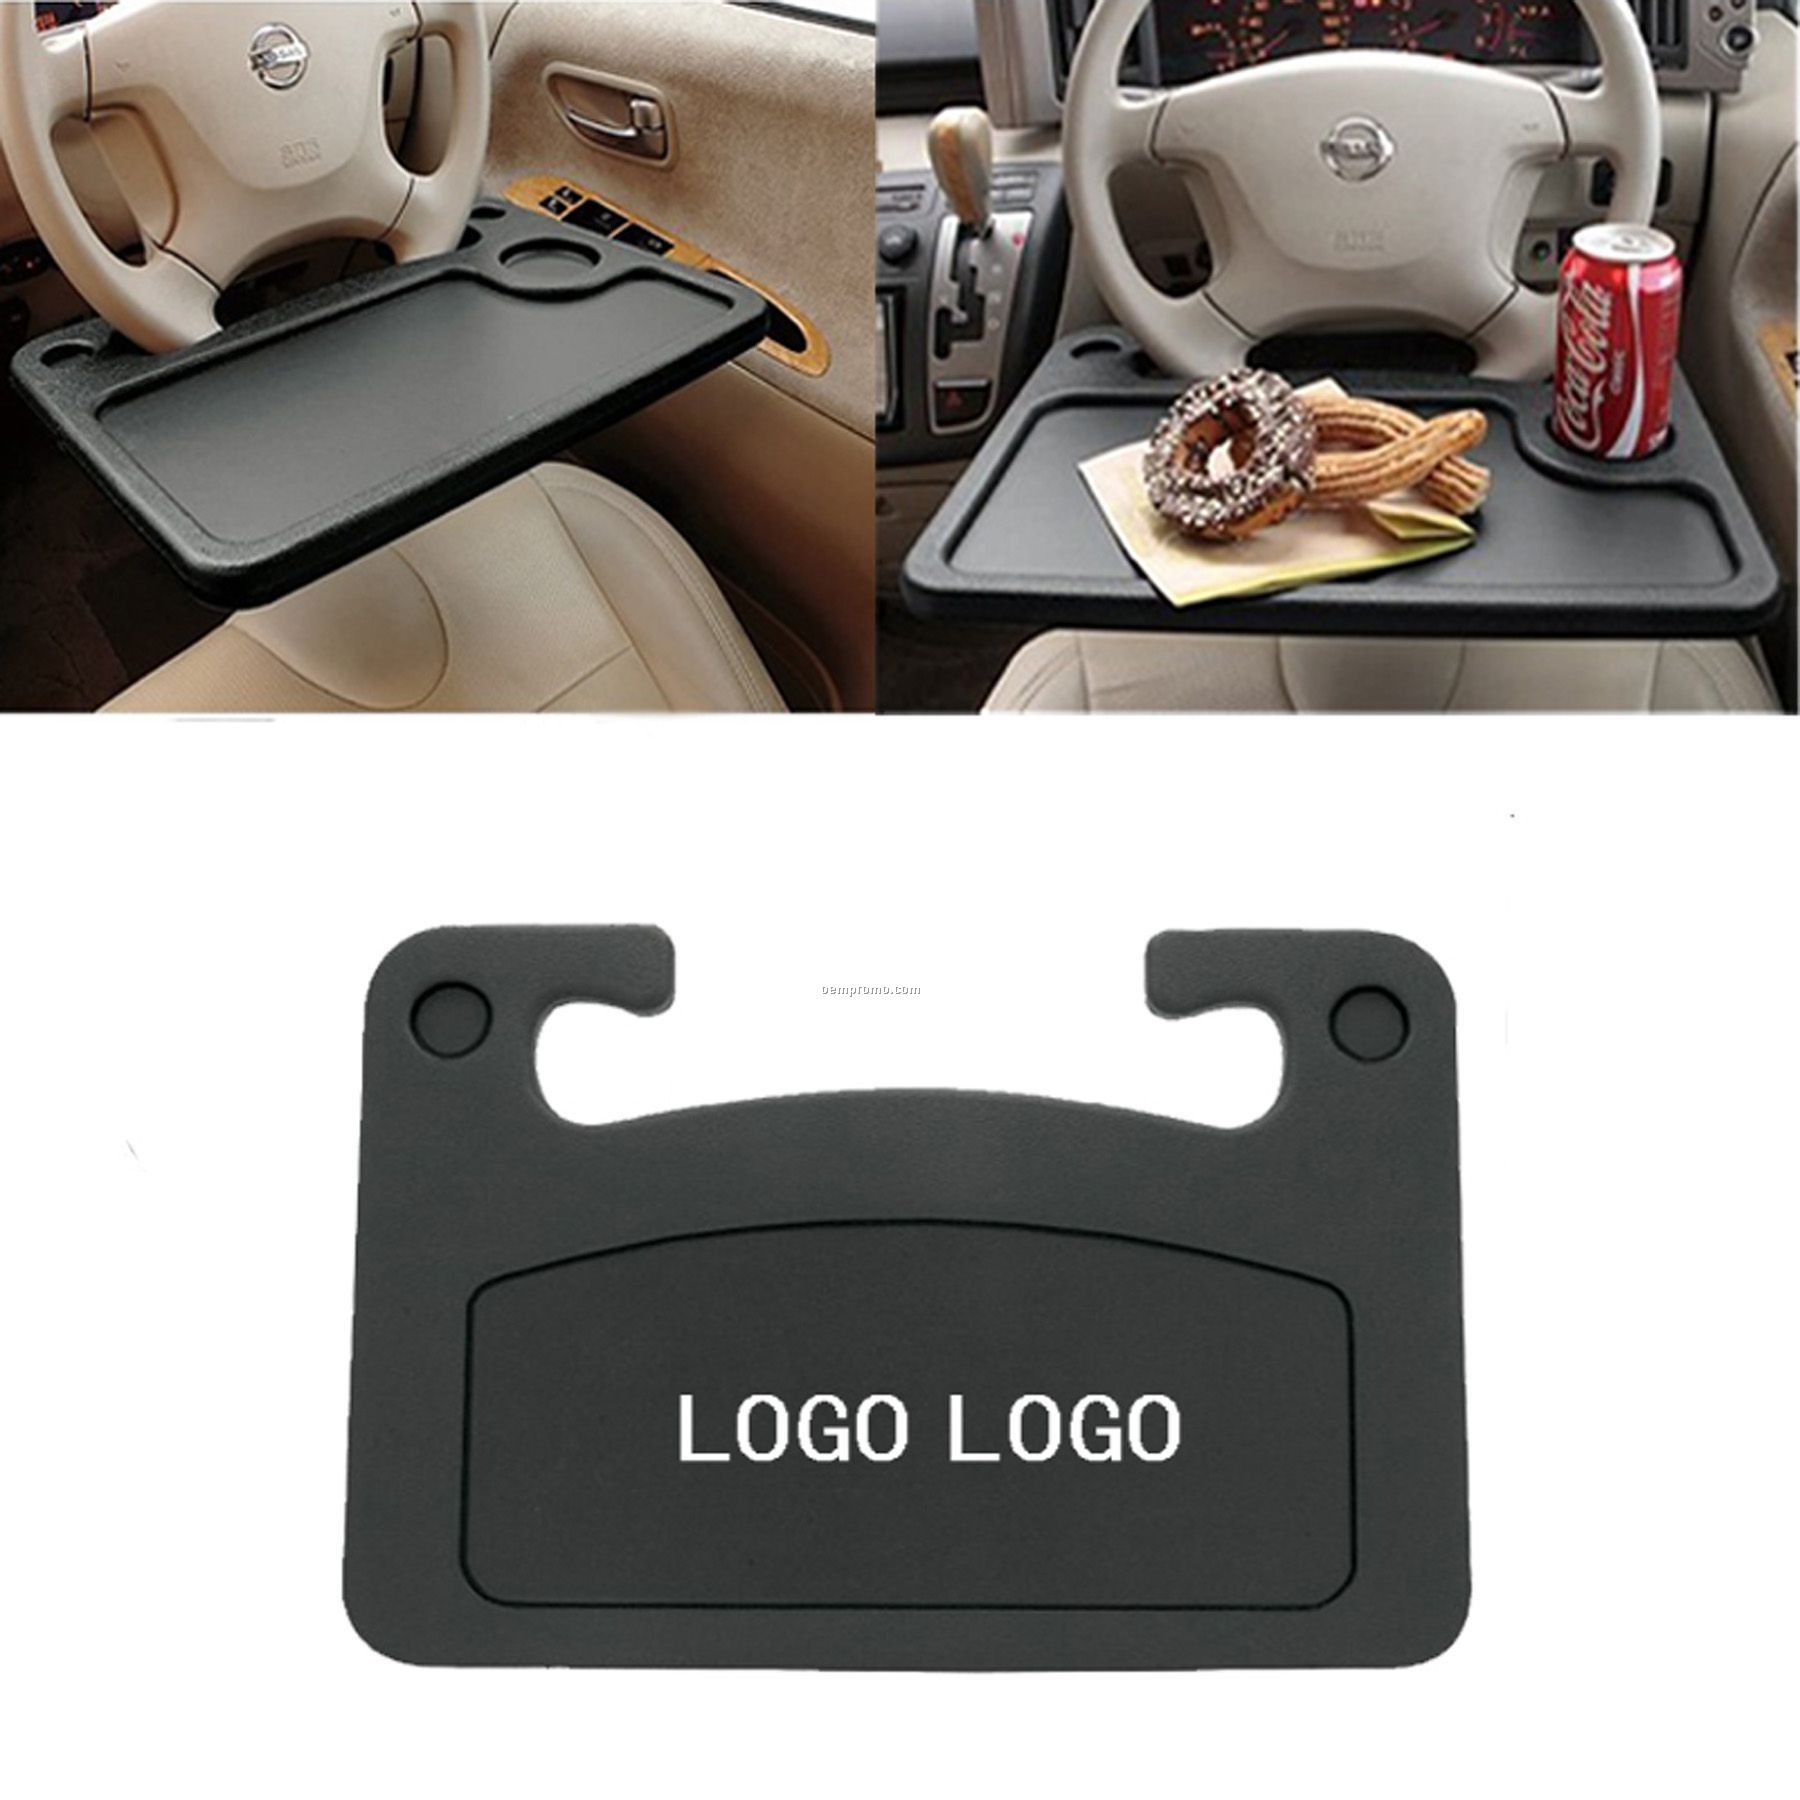 Automobile Tray, Convenient Car Table